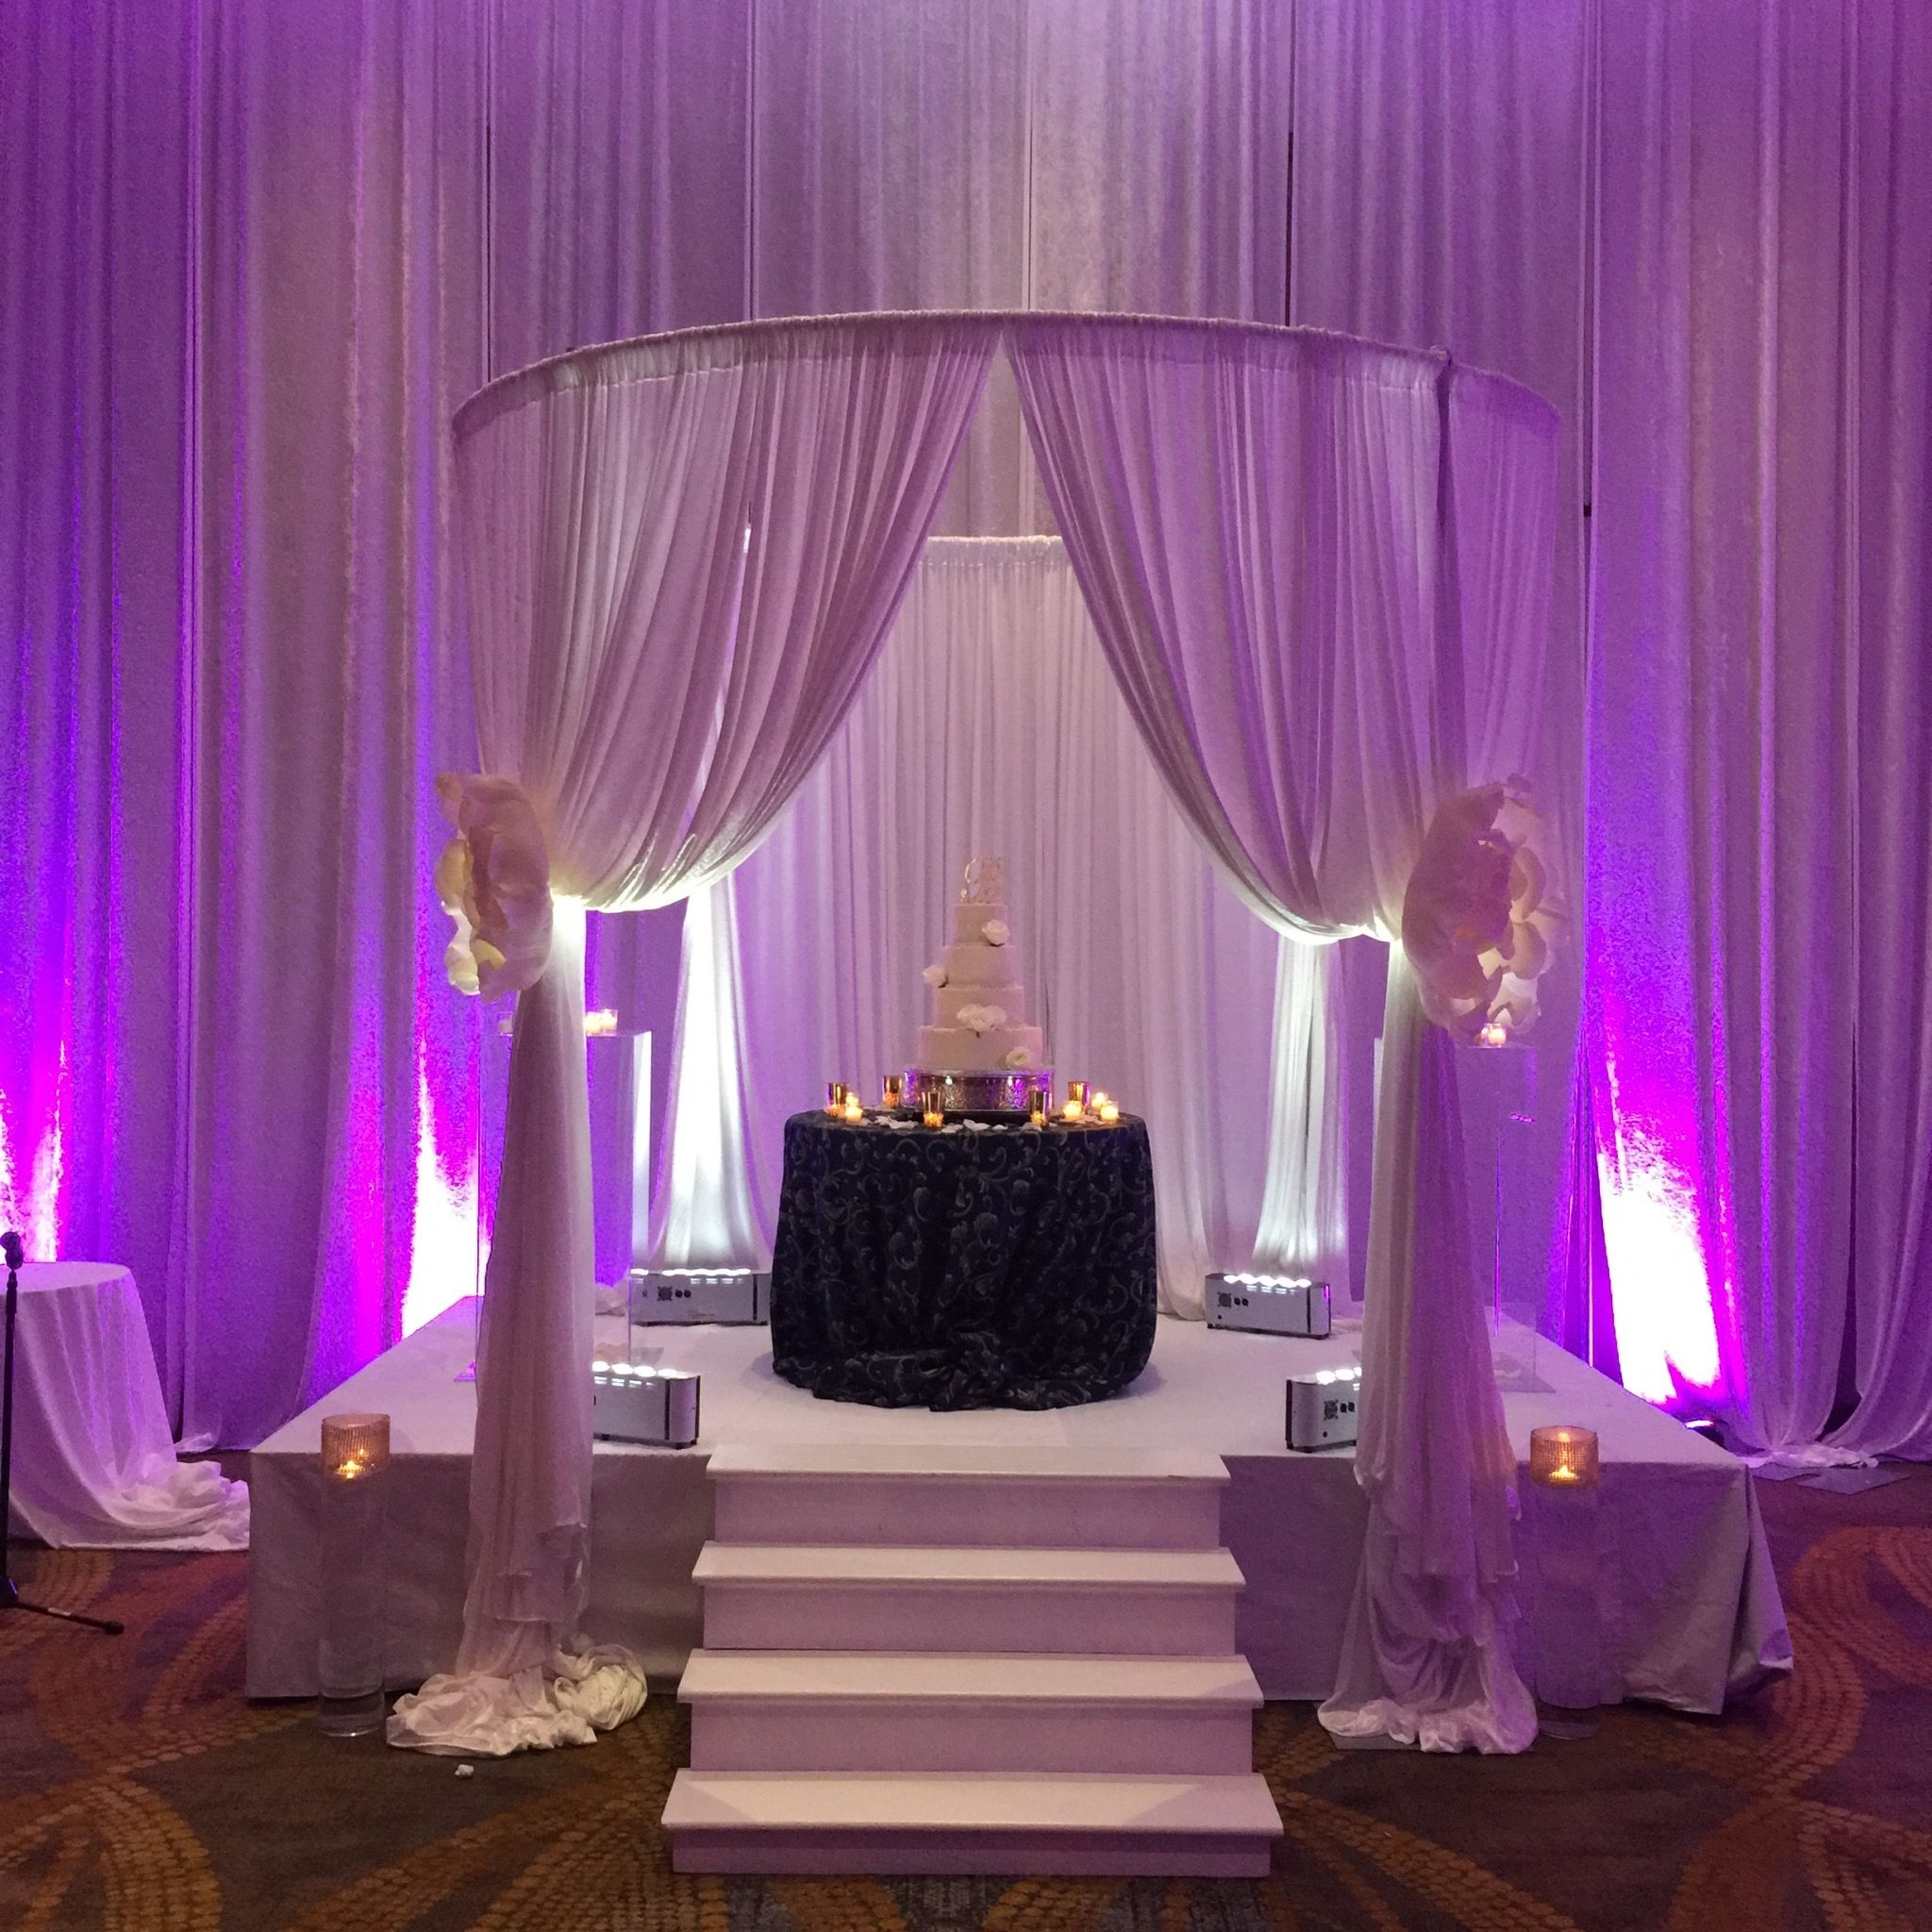 drapes rentals greenwich lighting pipe ri cabana in ct for drape party display ma and ny rent